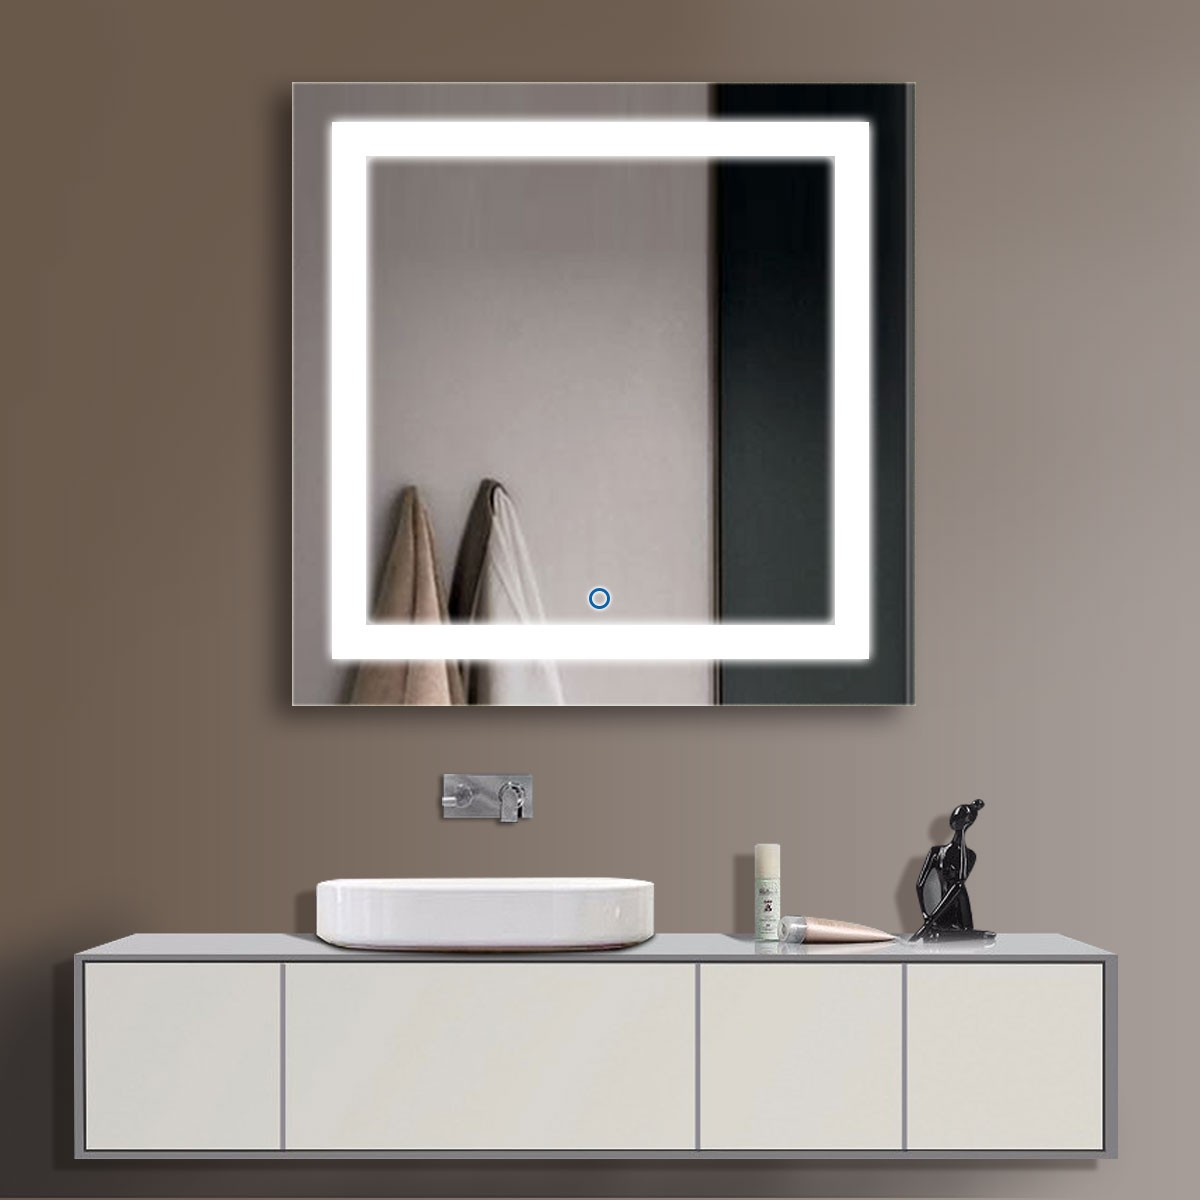 36 x 36 po miroir led salle de bains vertical avec. Black Bedroom Furniture Sets. Home Design Ideas